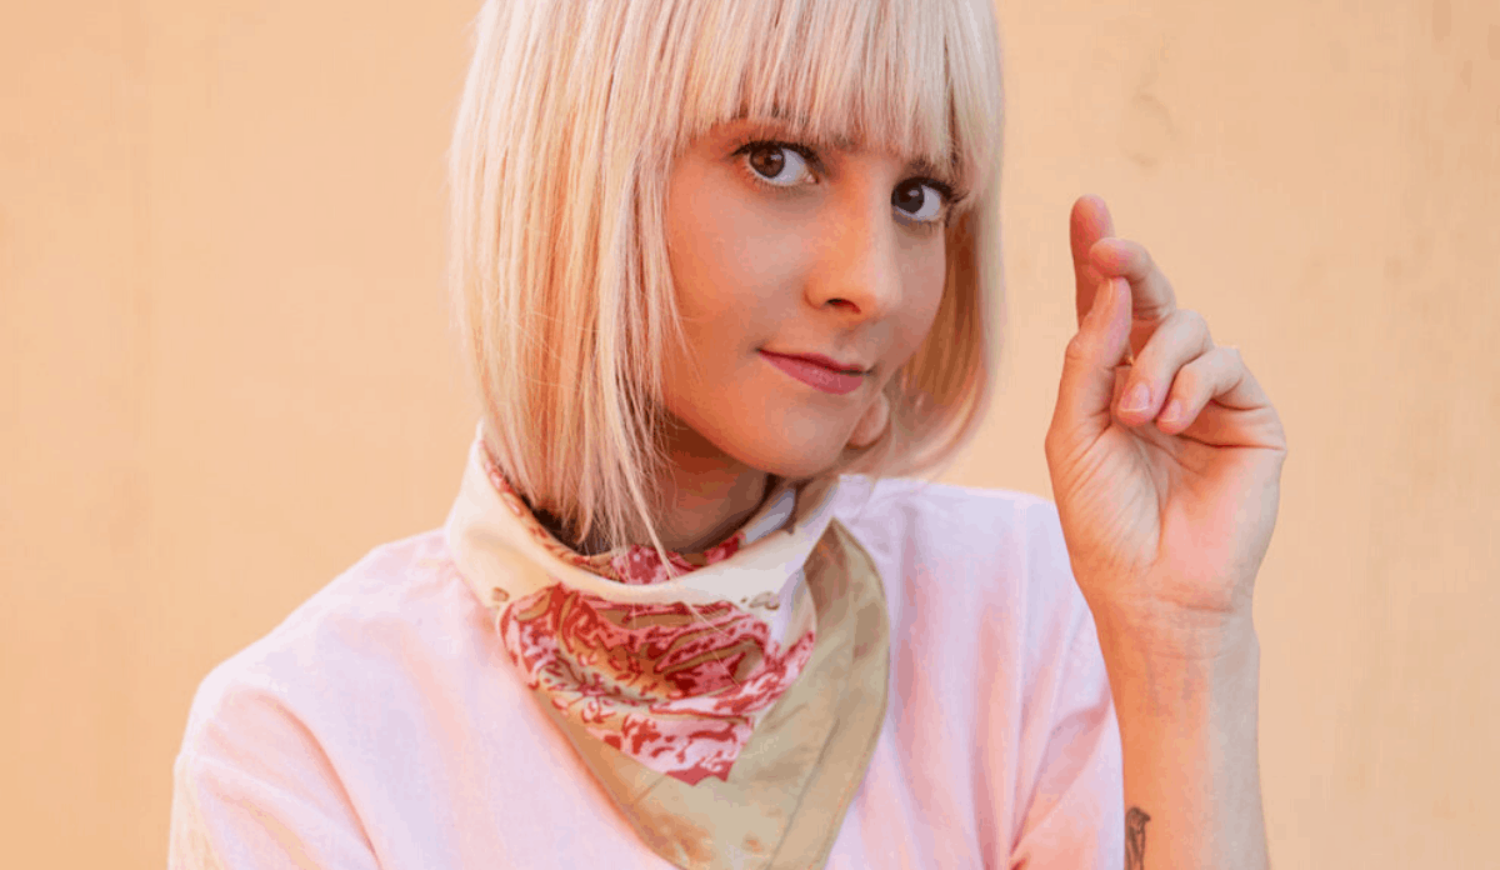 women with modern haircut in a pink tee shirt looking in camera in front of a light orange wall